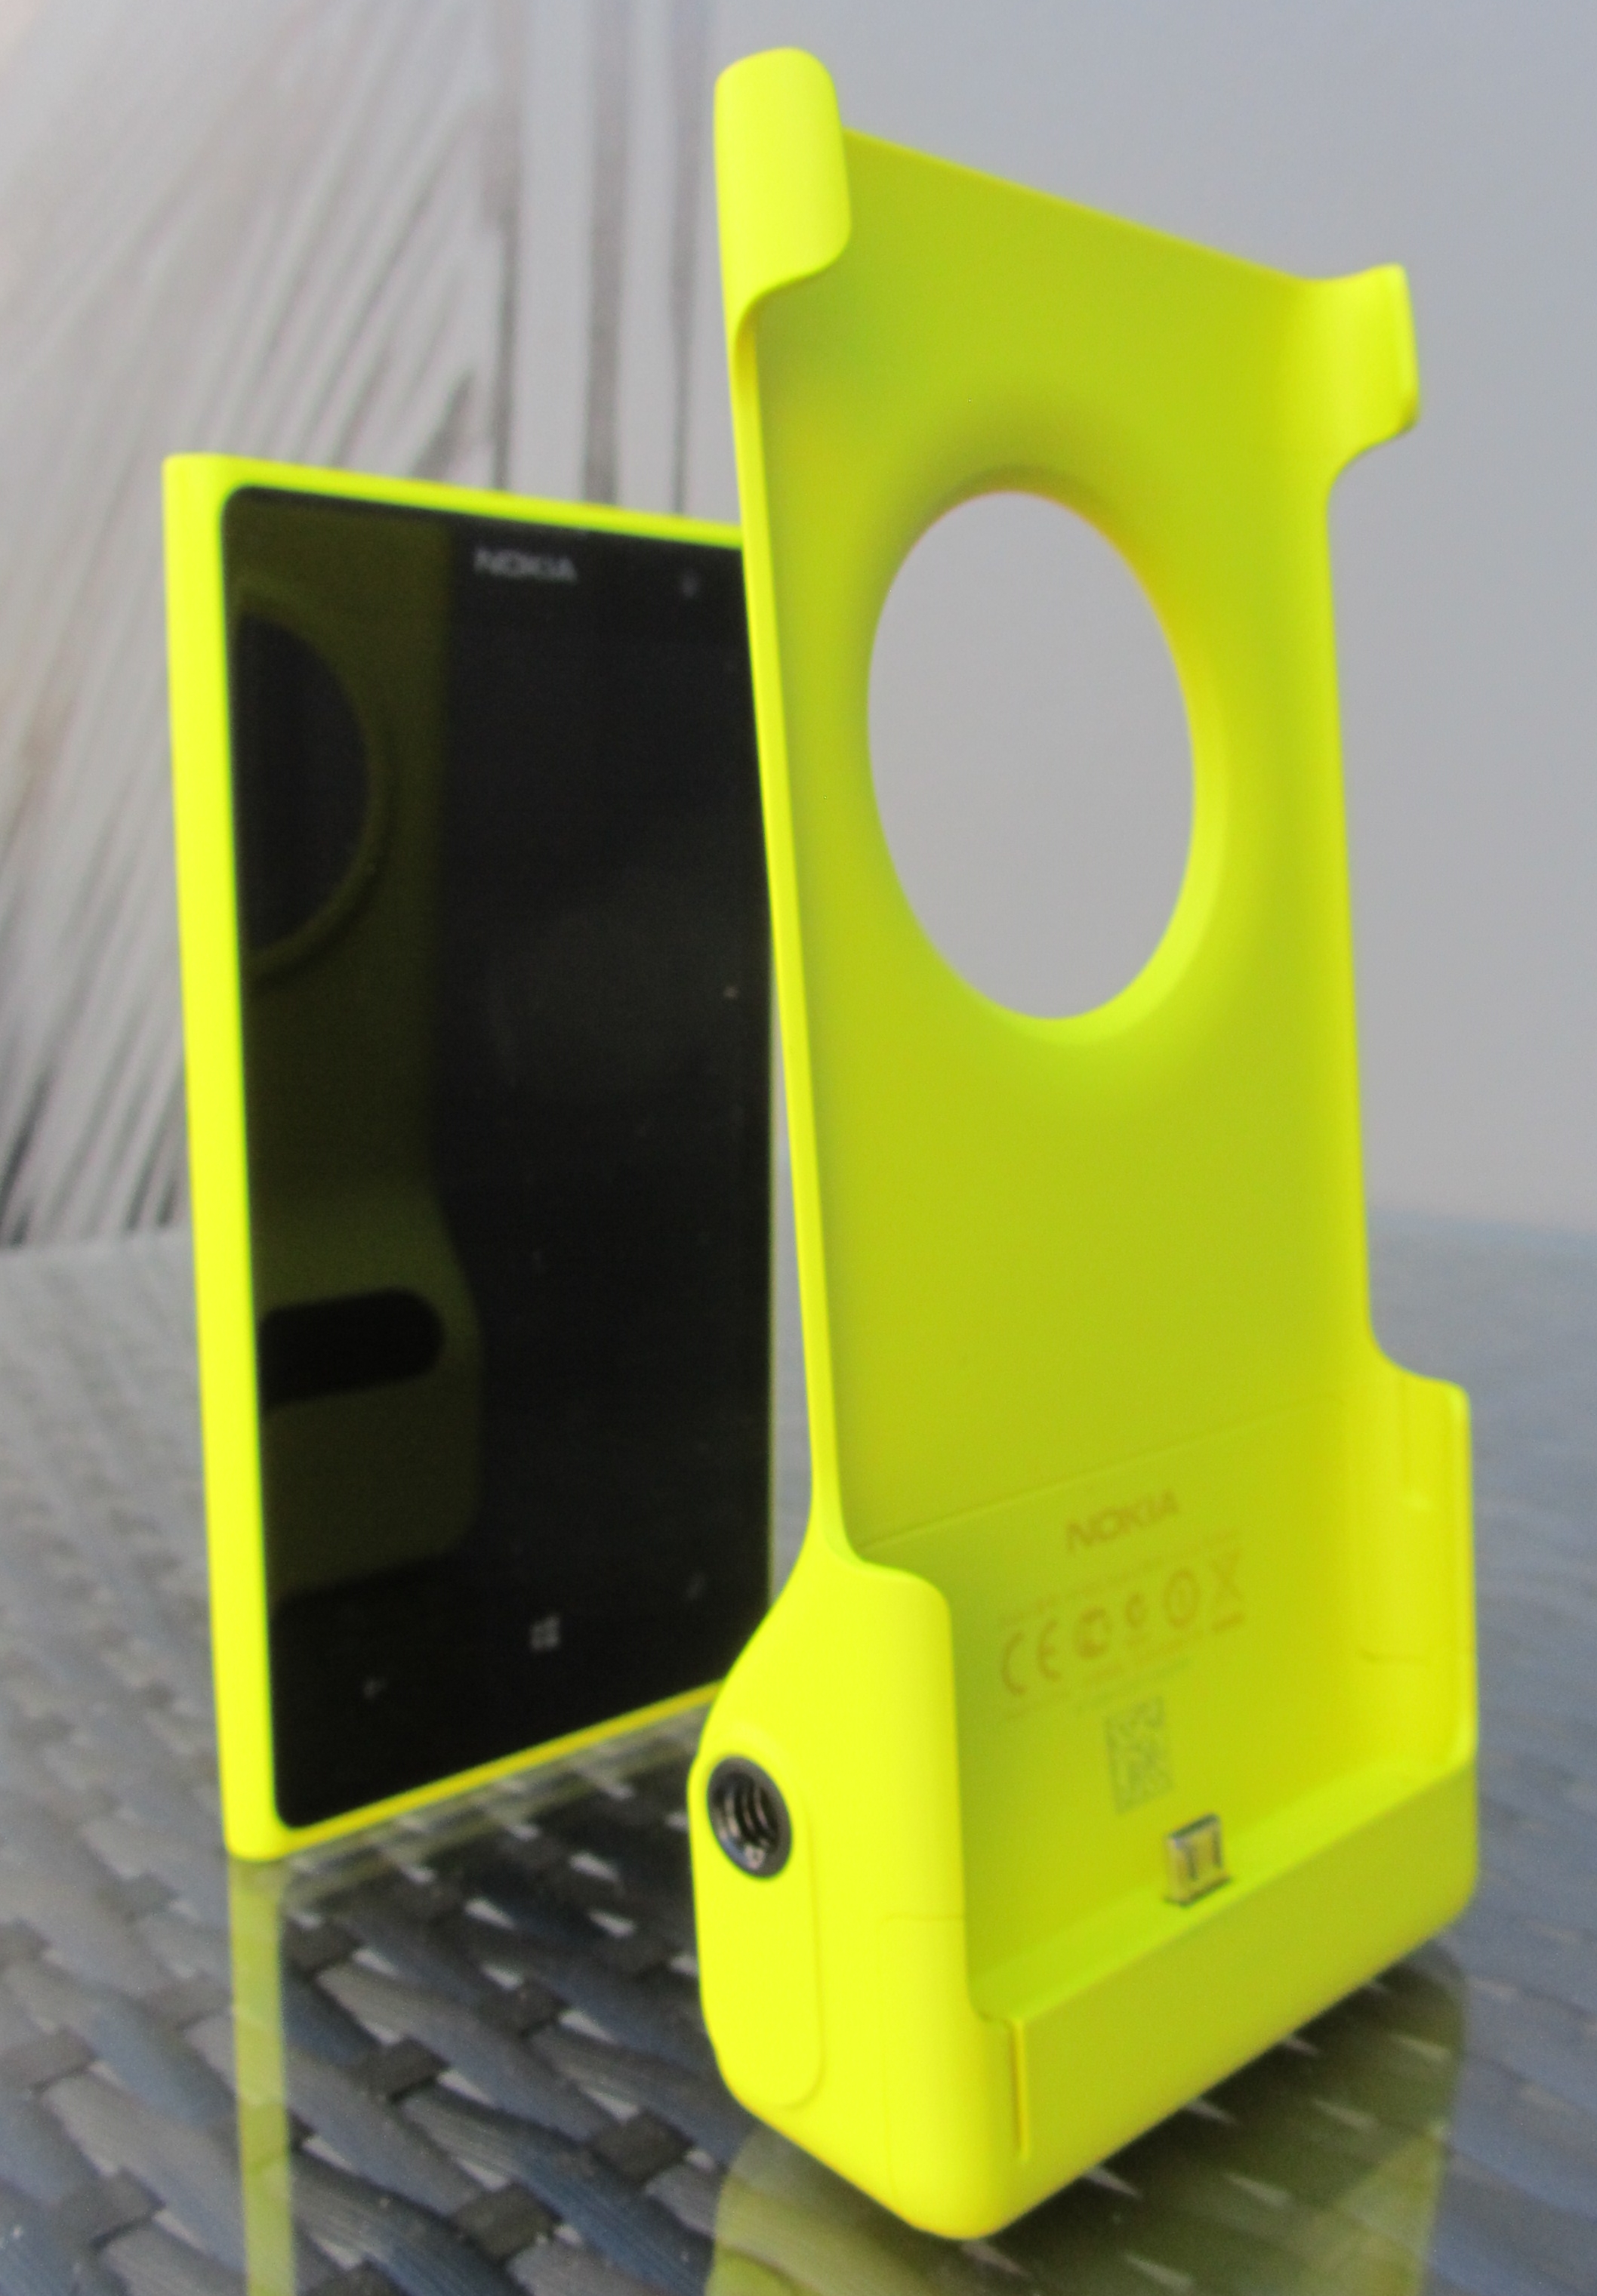 1020 camera grip Nokia Lumia 1020 review: The best camera phone, but not the best smartphone